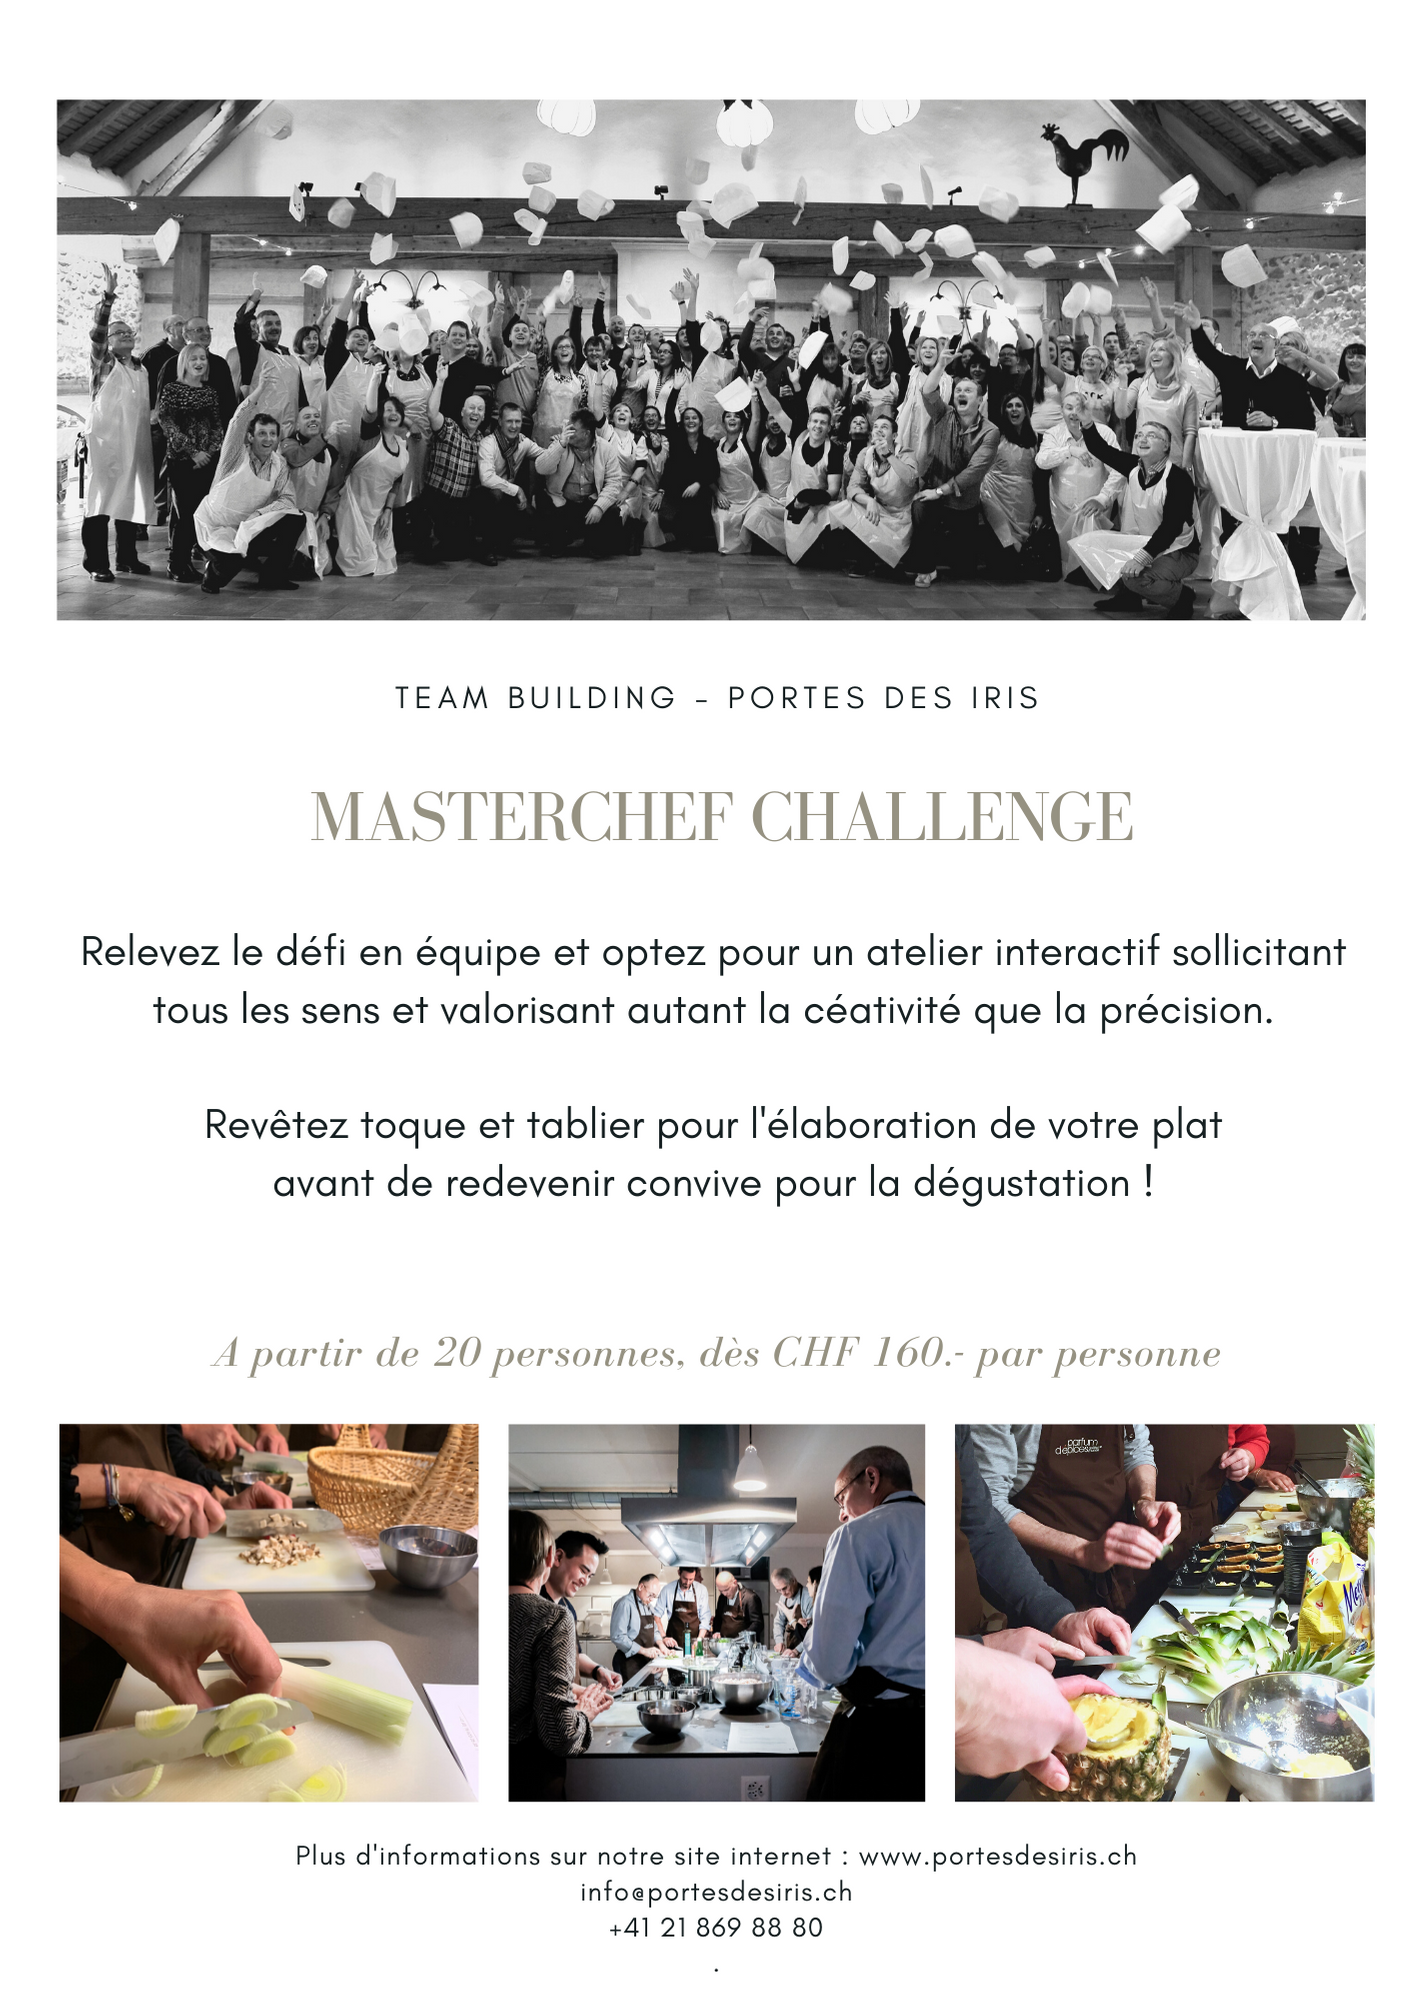 Masterchef 1 - Team building